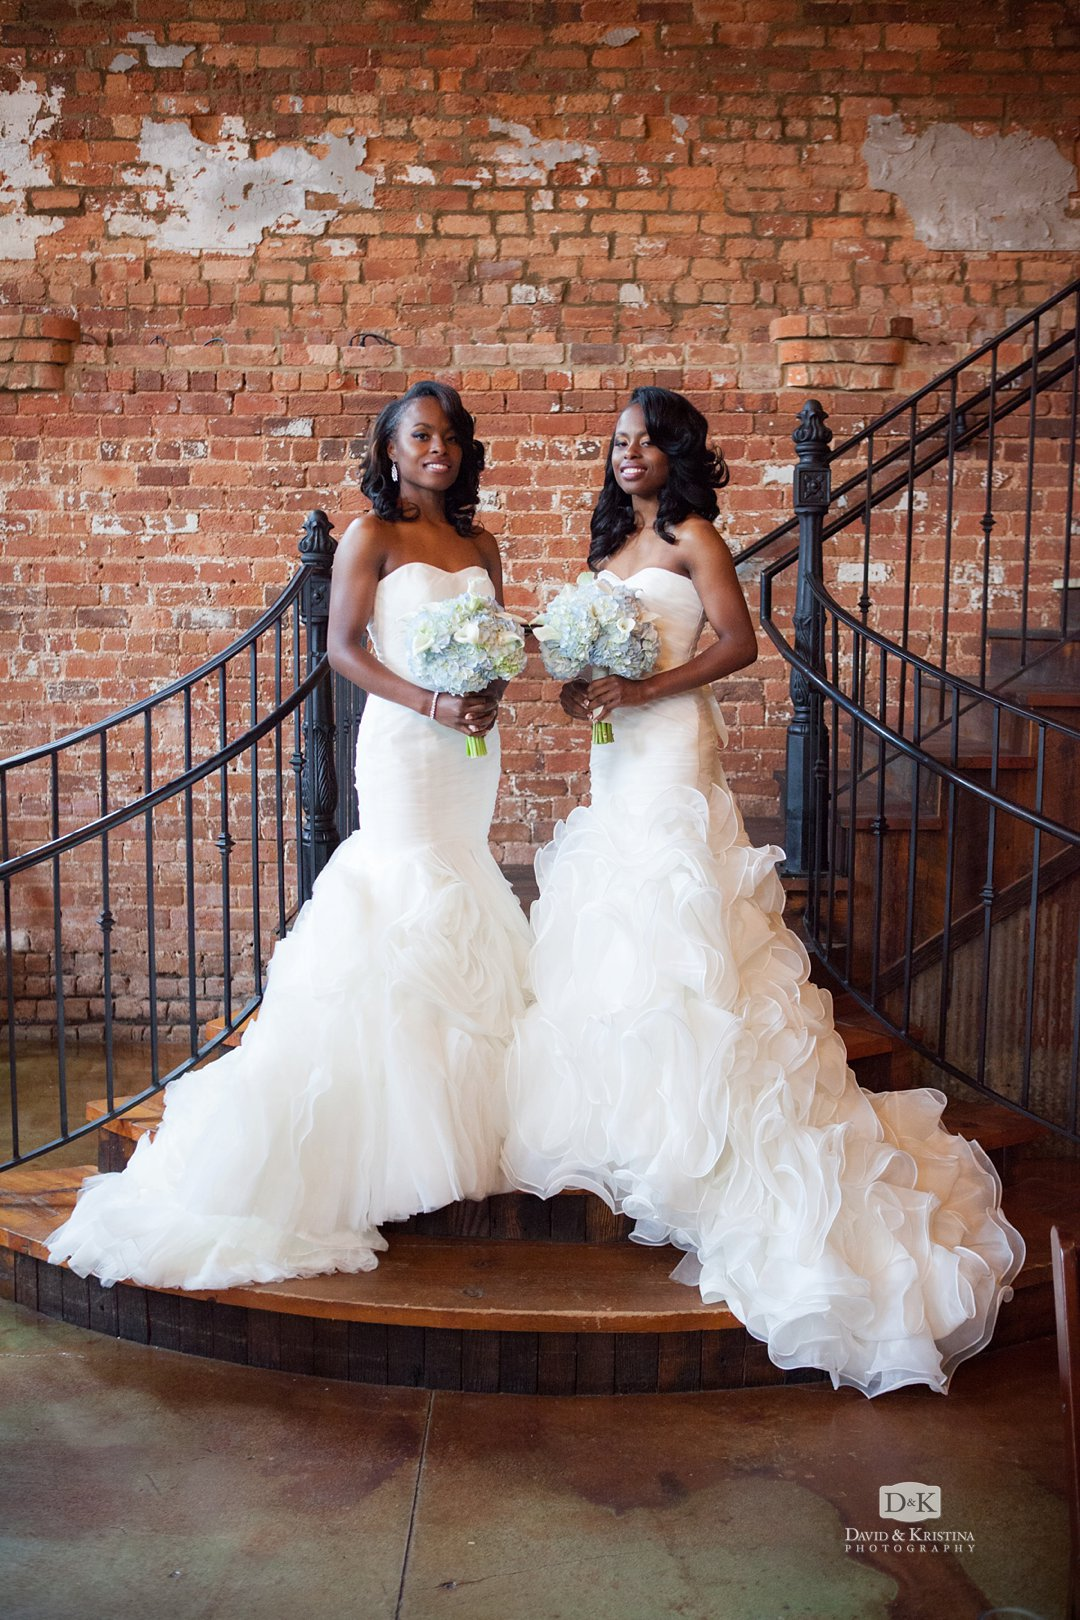 twin sisters as brides at double wedding